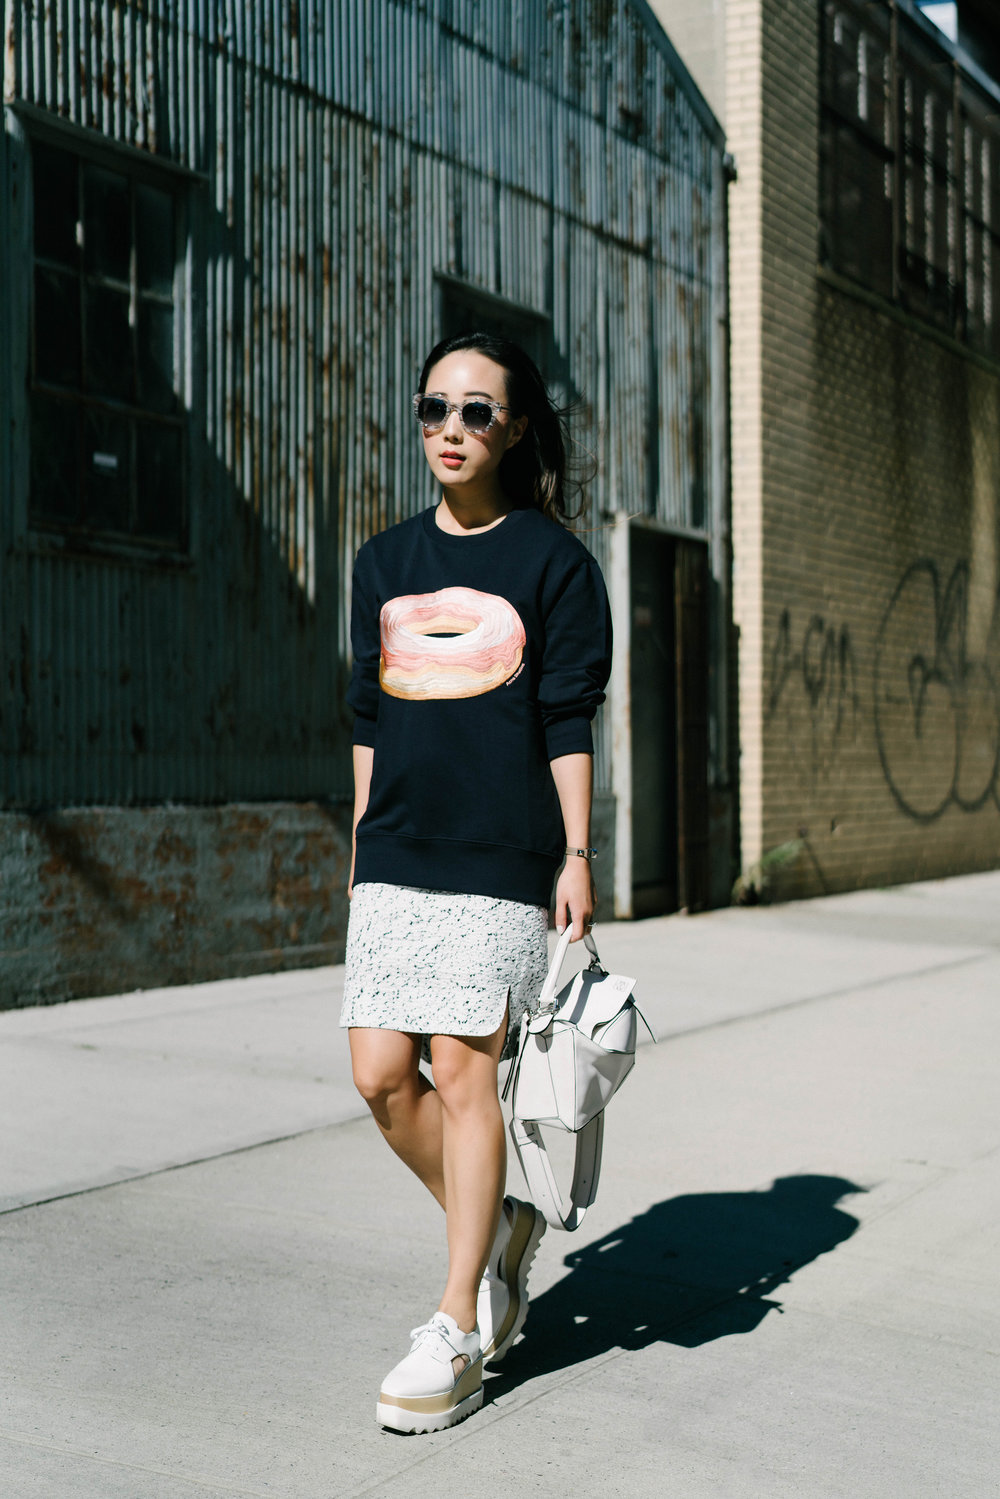 Acne Studios Top, COS Skirt, Stella McCartney Shoes, Loewe Bag, Thierry Lasry Sunglasses, Hermes Watch